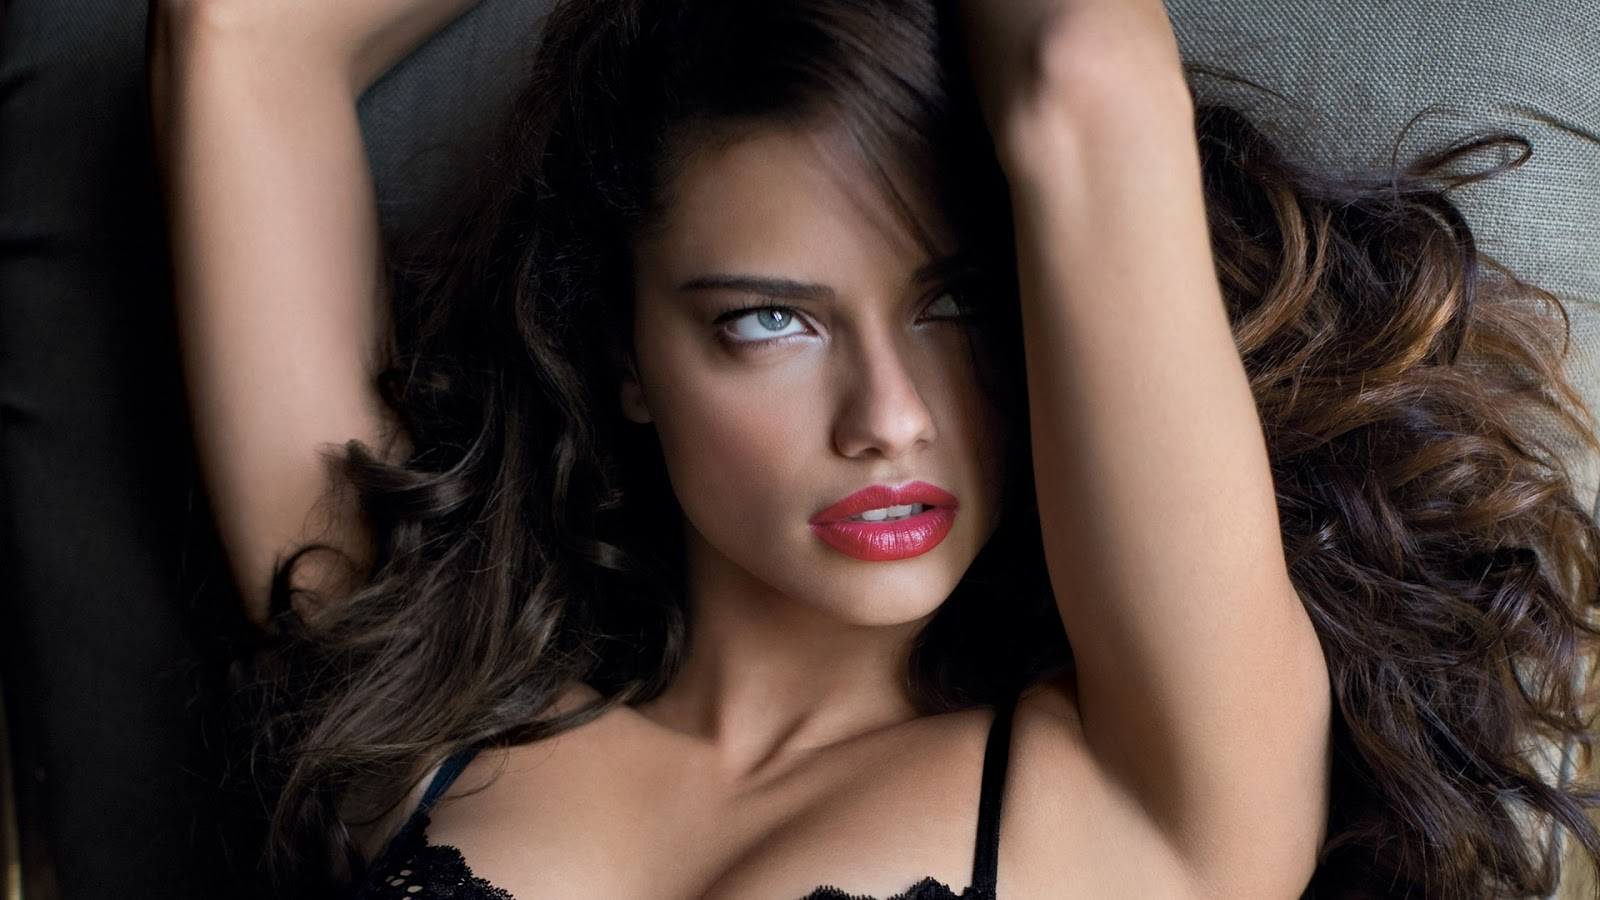 Adriana Lima Red Hot Lips Wallpaper